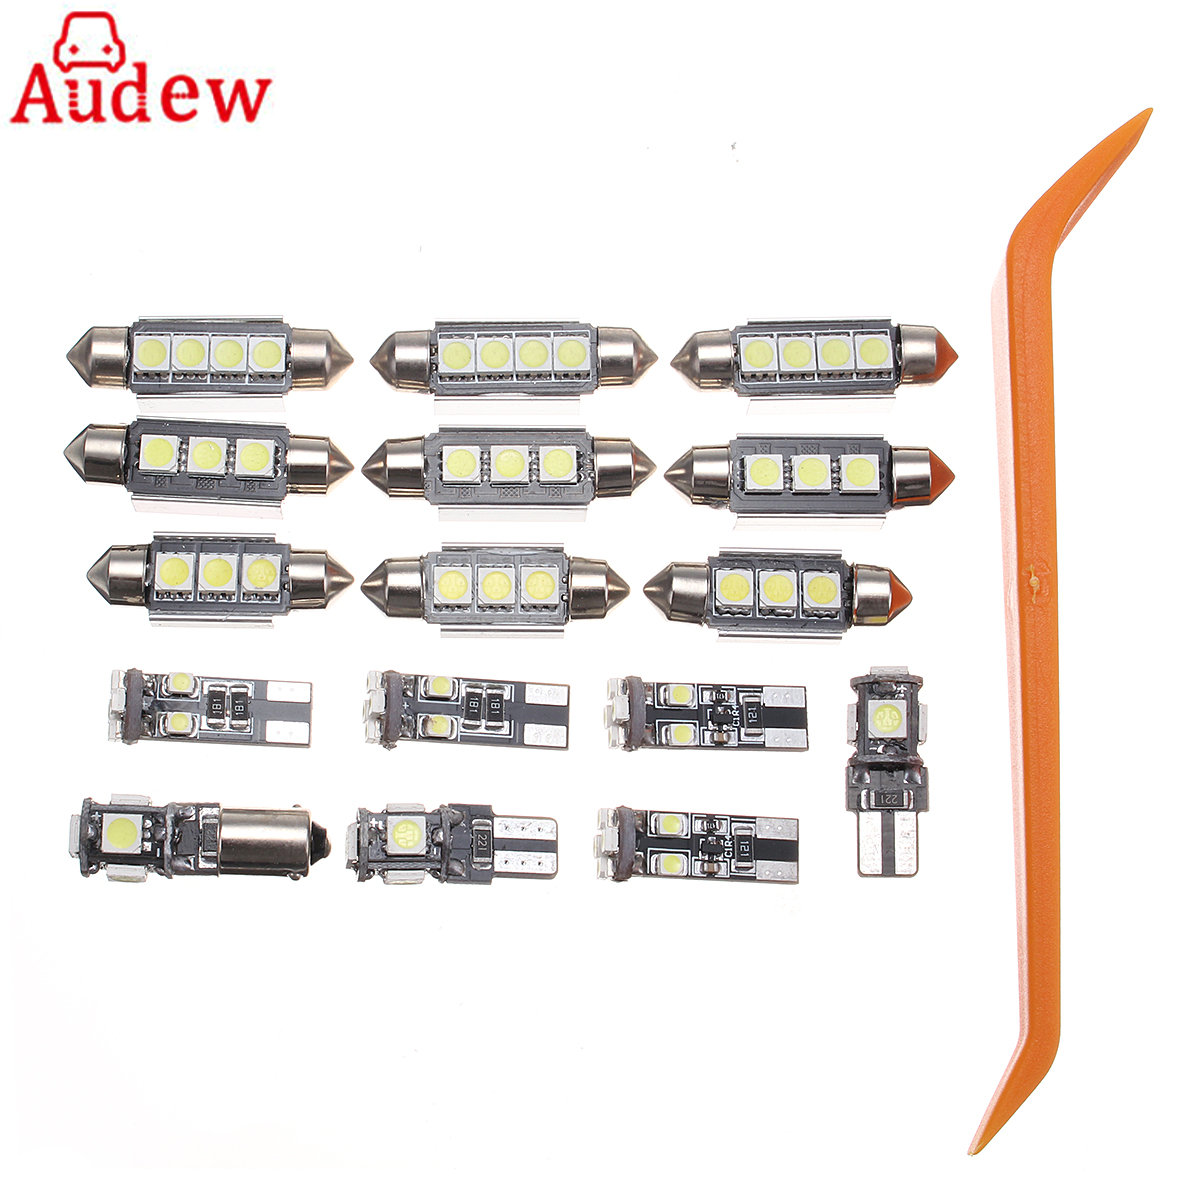 16pcs white Car LED Light Canbus Interior lamp package for VW Passat B6 2006-2010 13pcs canbus car led light bulbs interior package kit for 2006 2010 jeep commander map dome trunk license plate lamp white